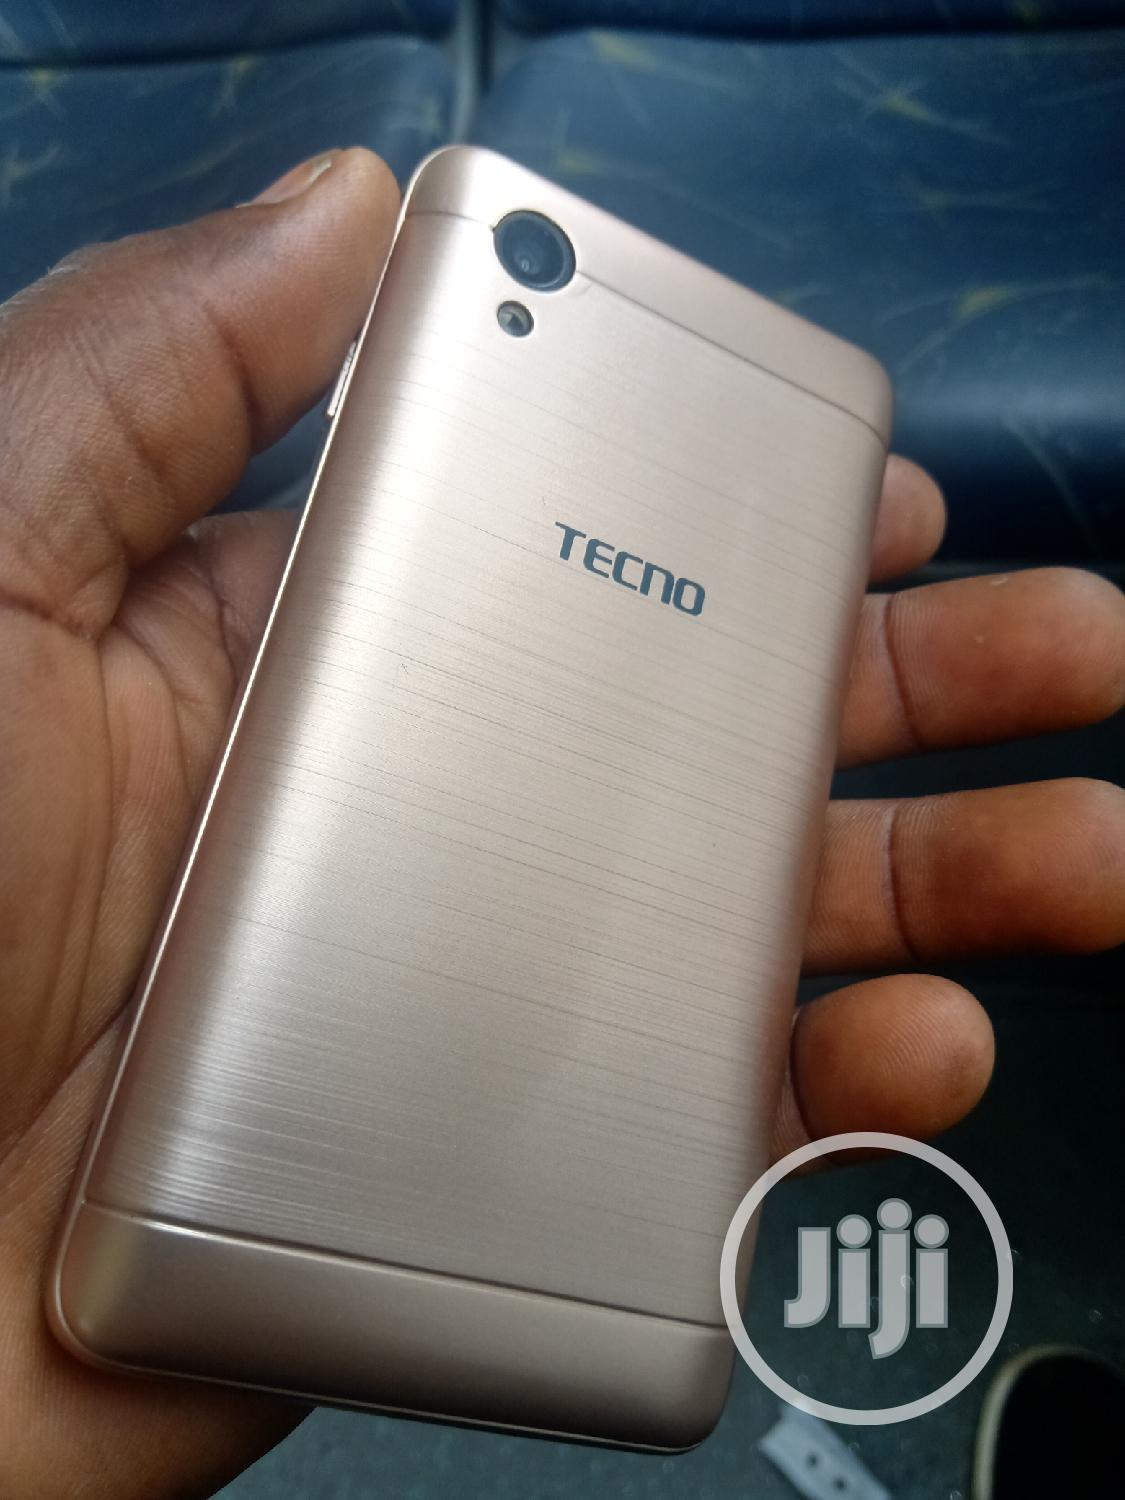 Tecno Y2 8 GB Gold | Mobile Phones for sale in Ikeja, Lagos State, Nigeria